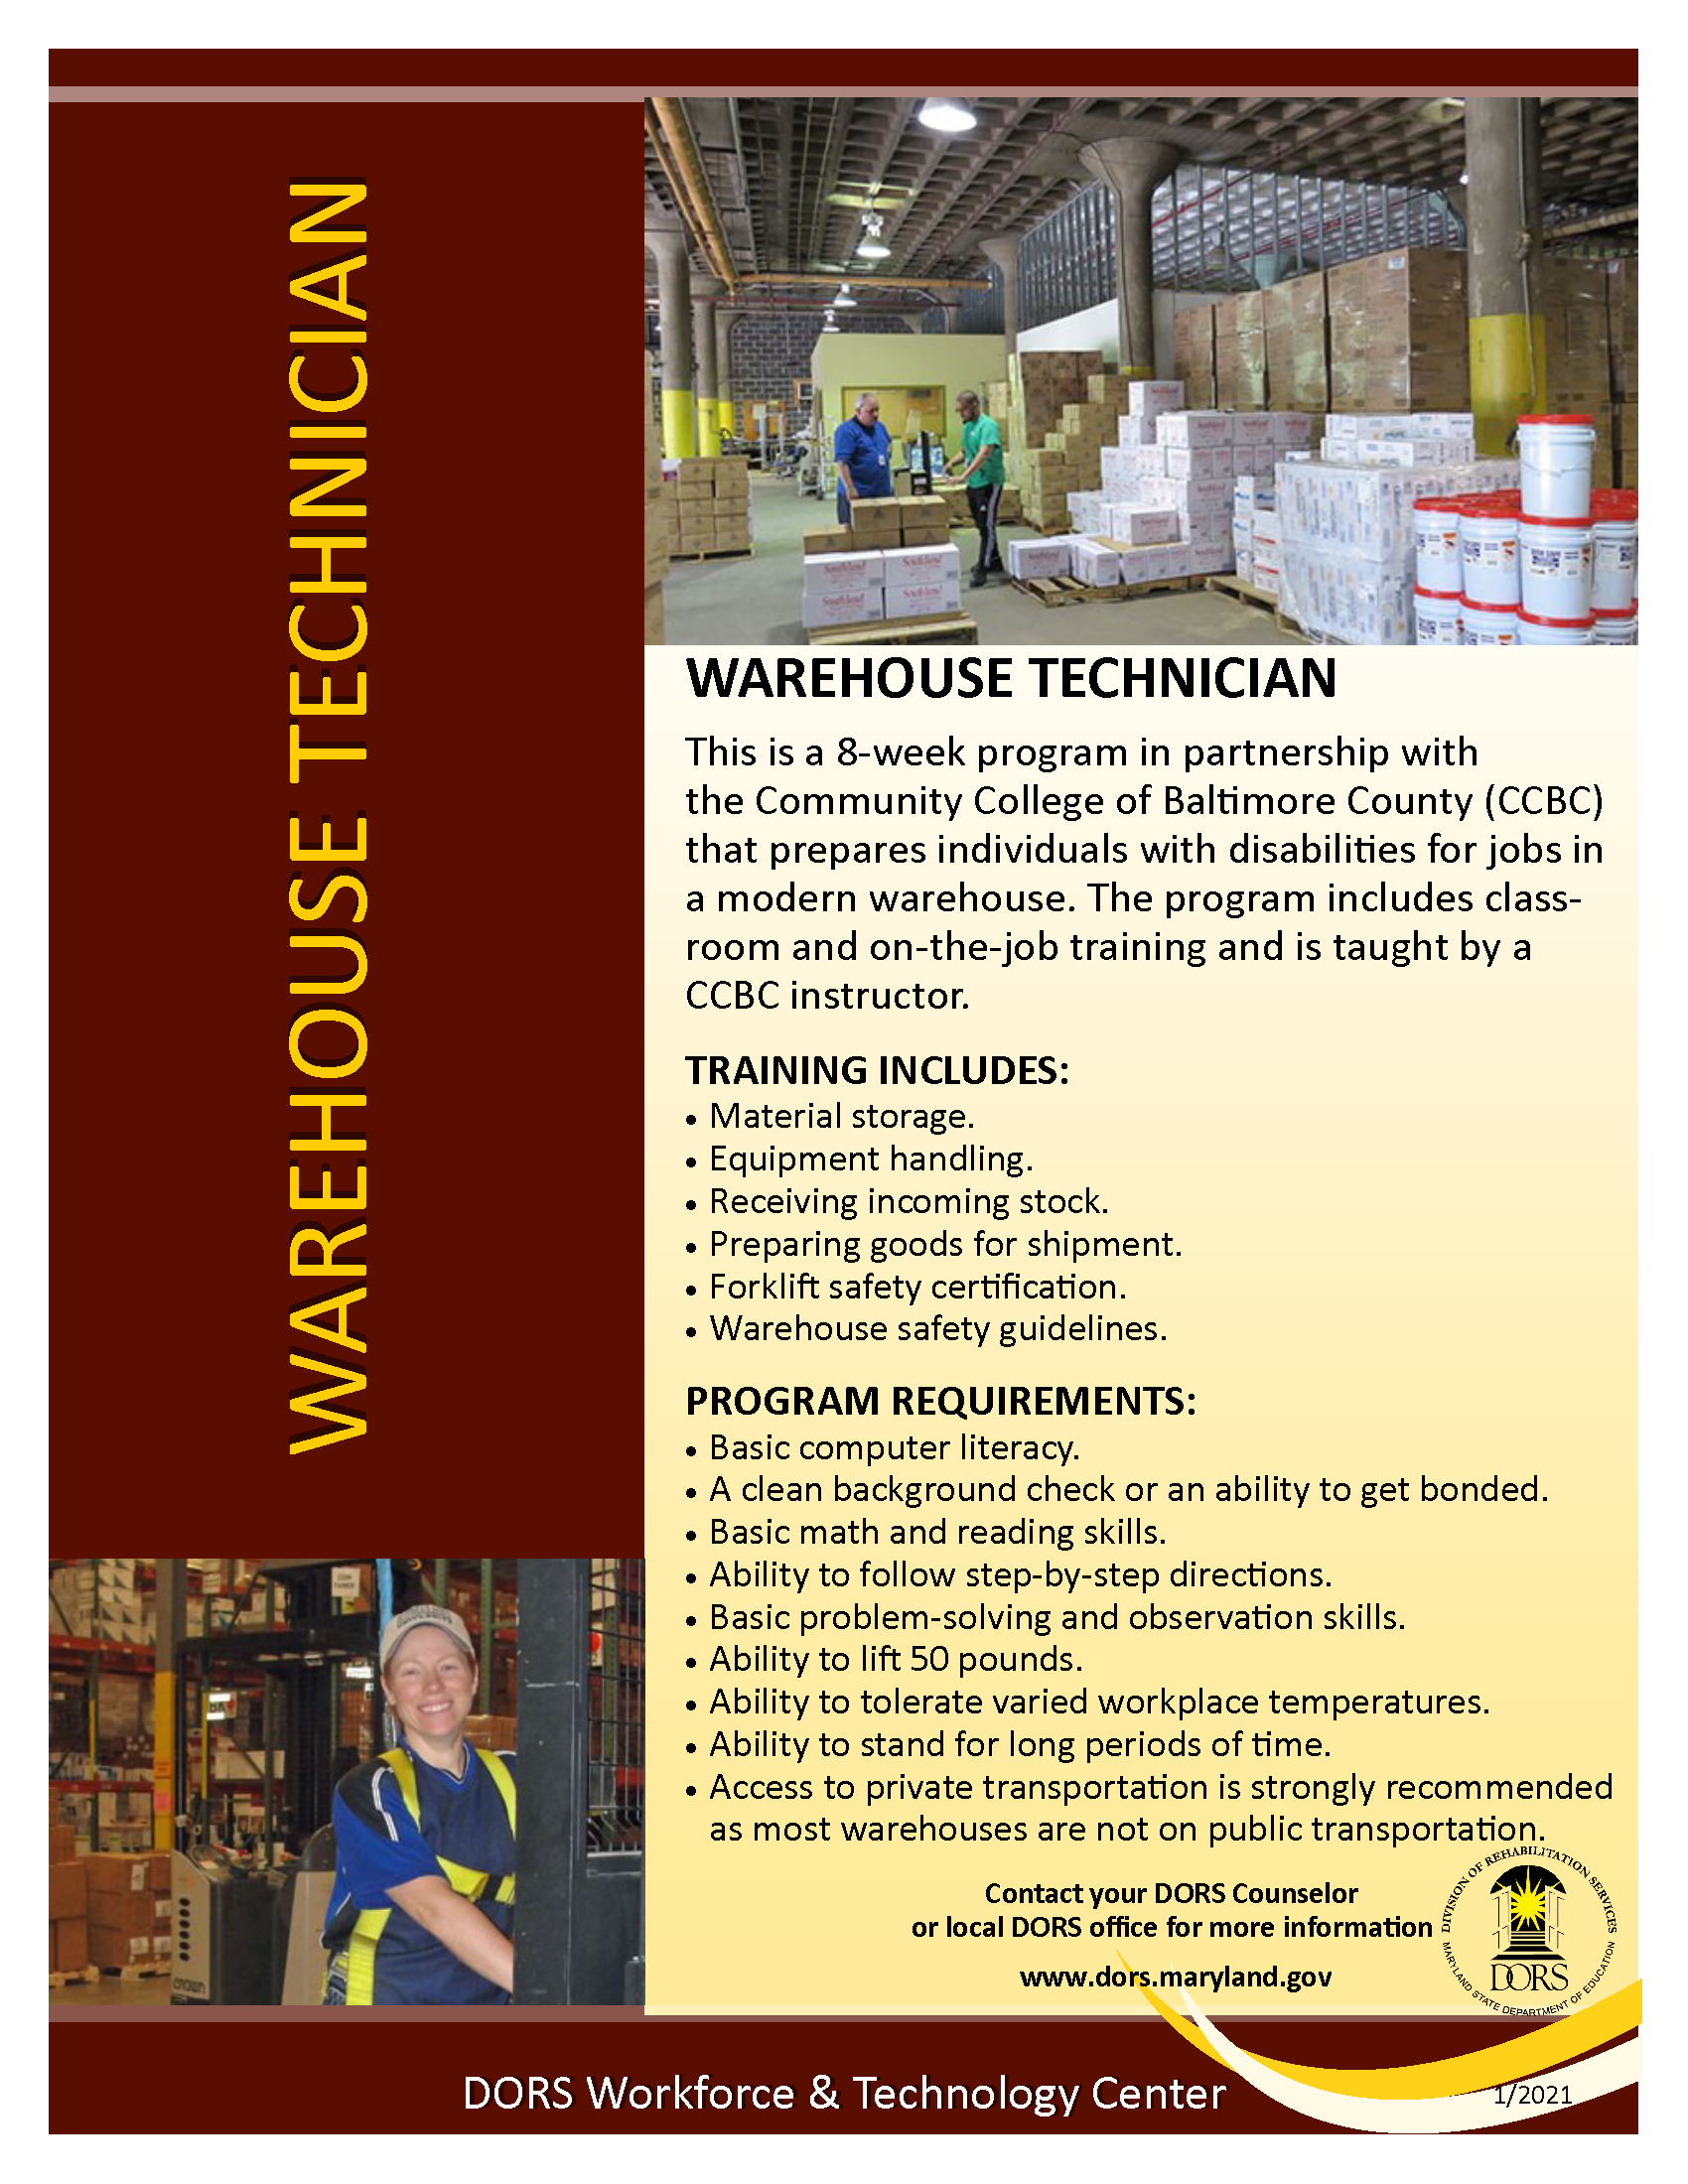 Warehouse Technician Handout PDF